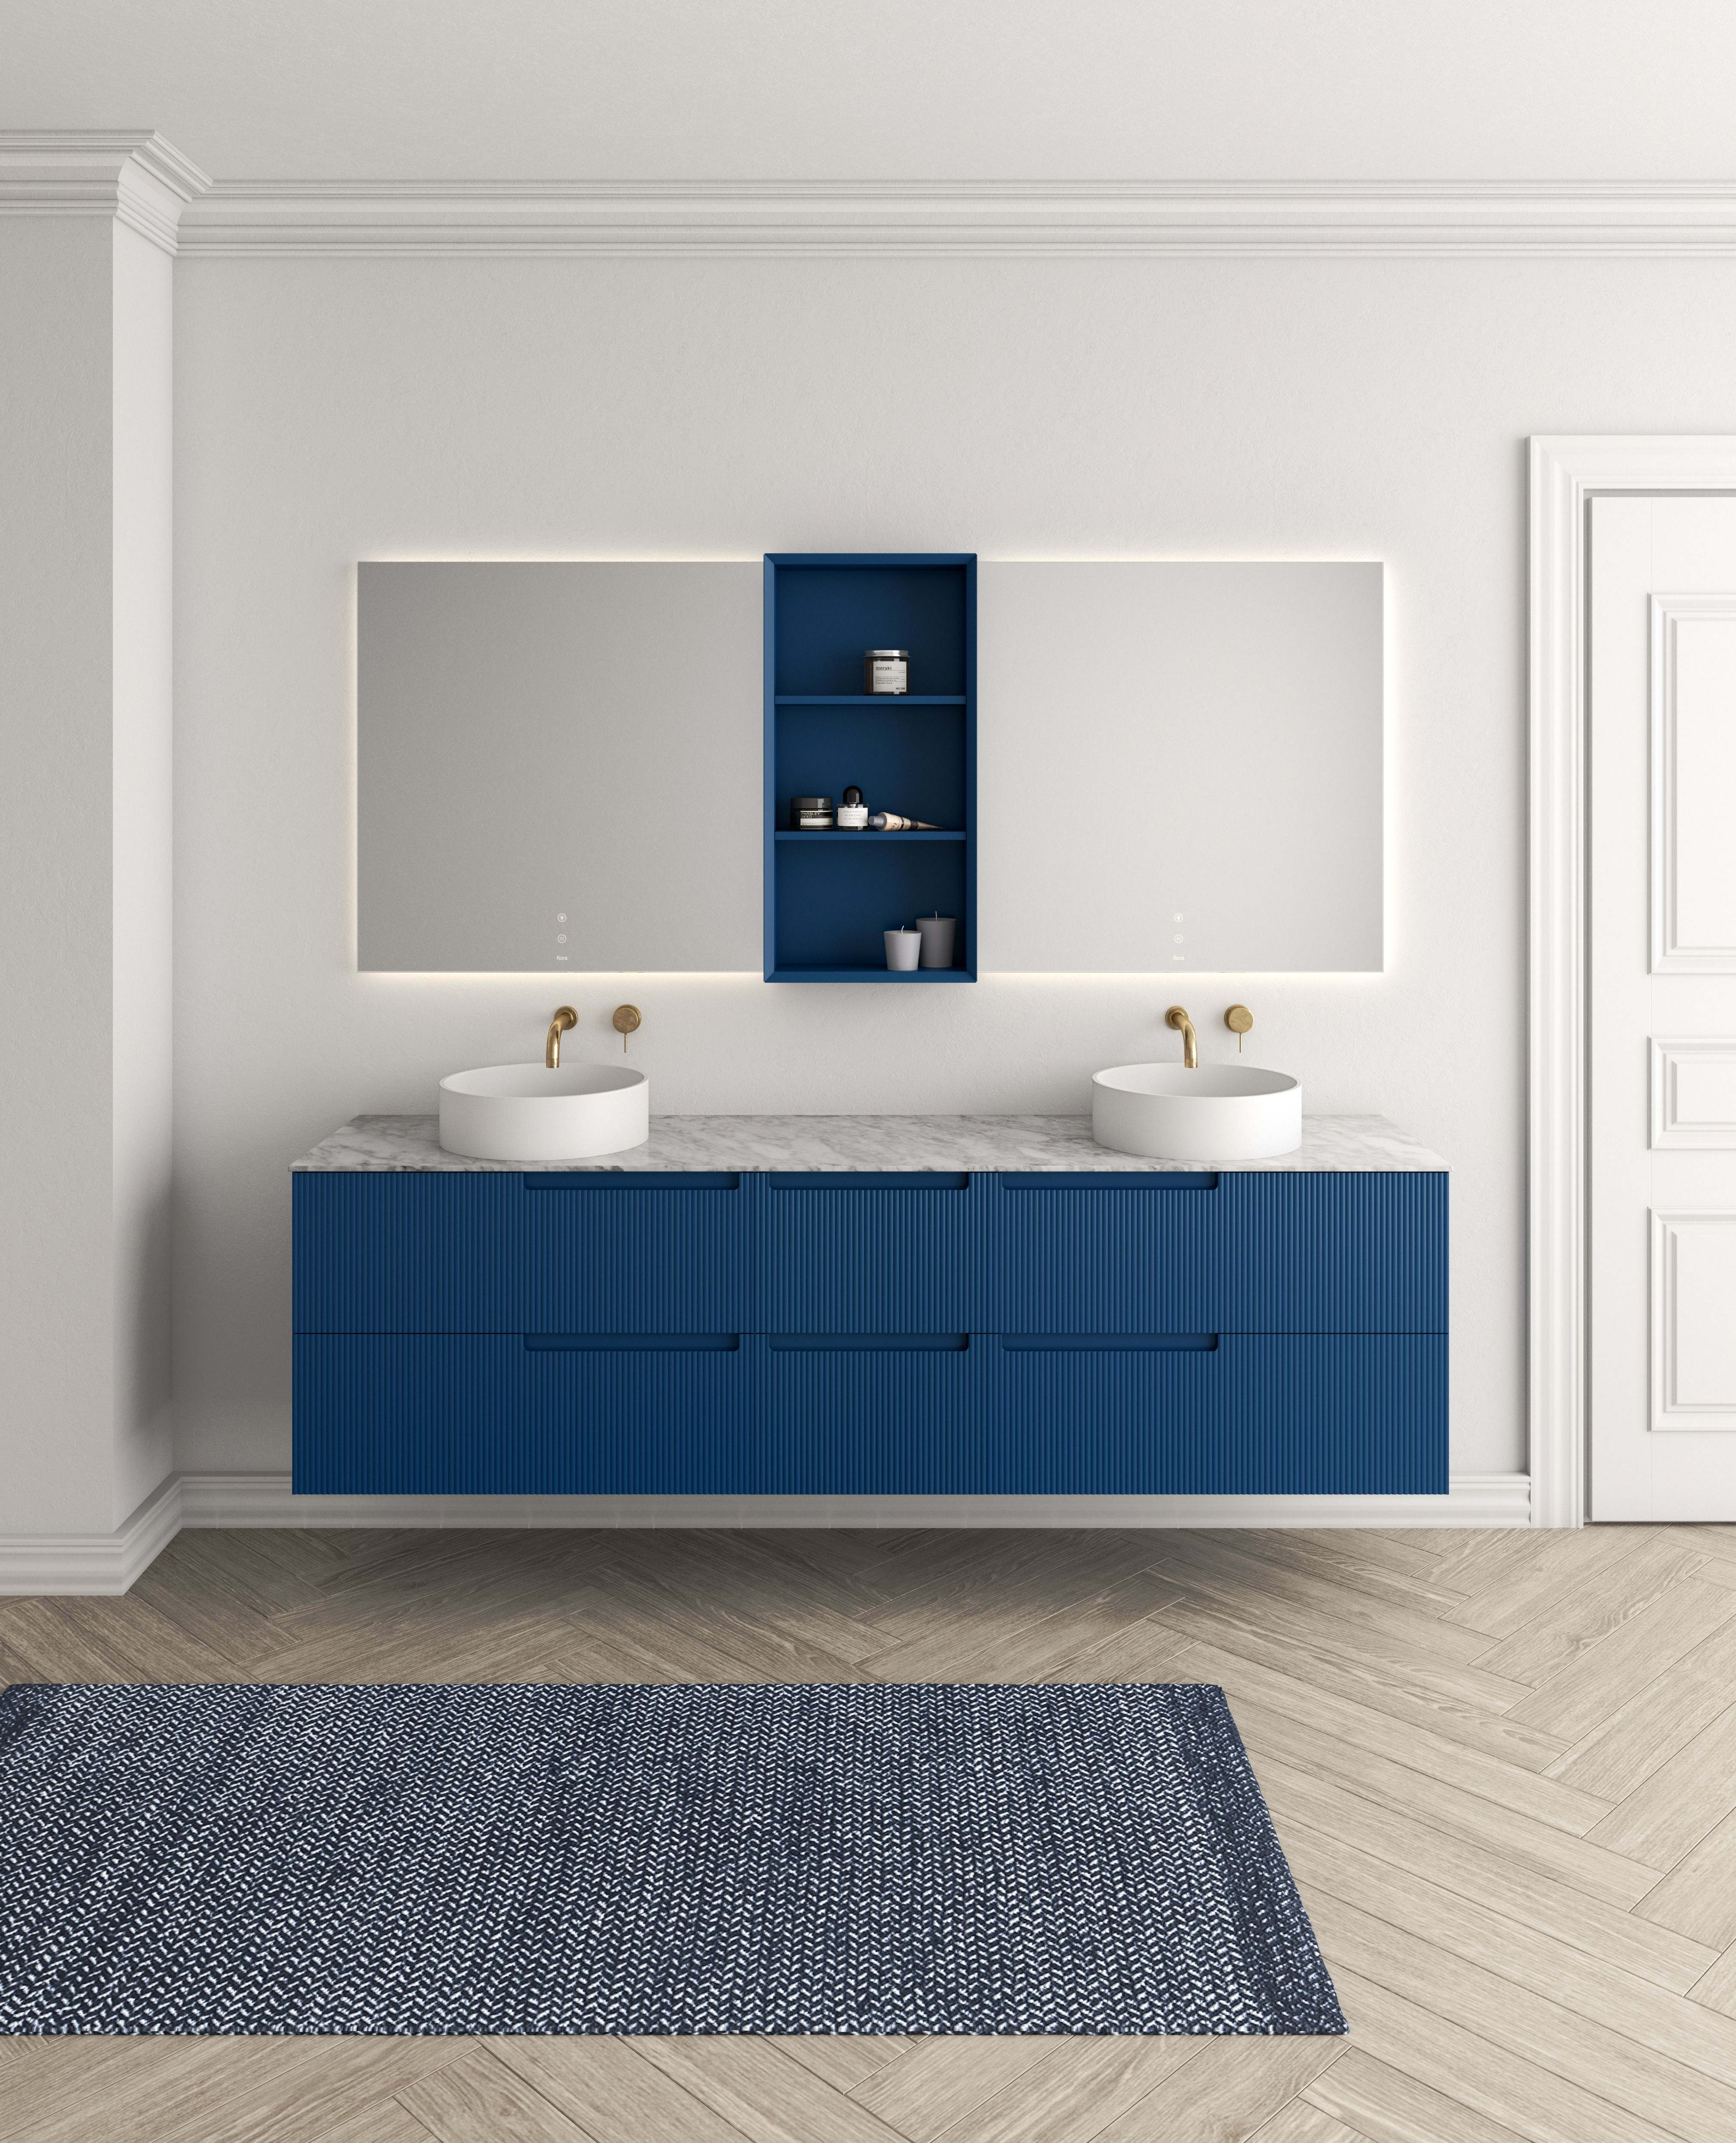 Fiora Salle De Bain fiora #bathroom #showertray #bath #salledebain #design #idea